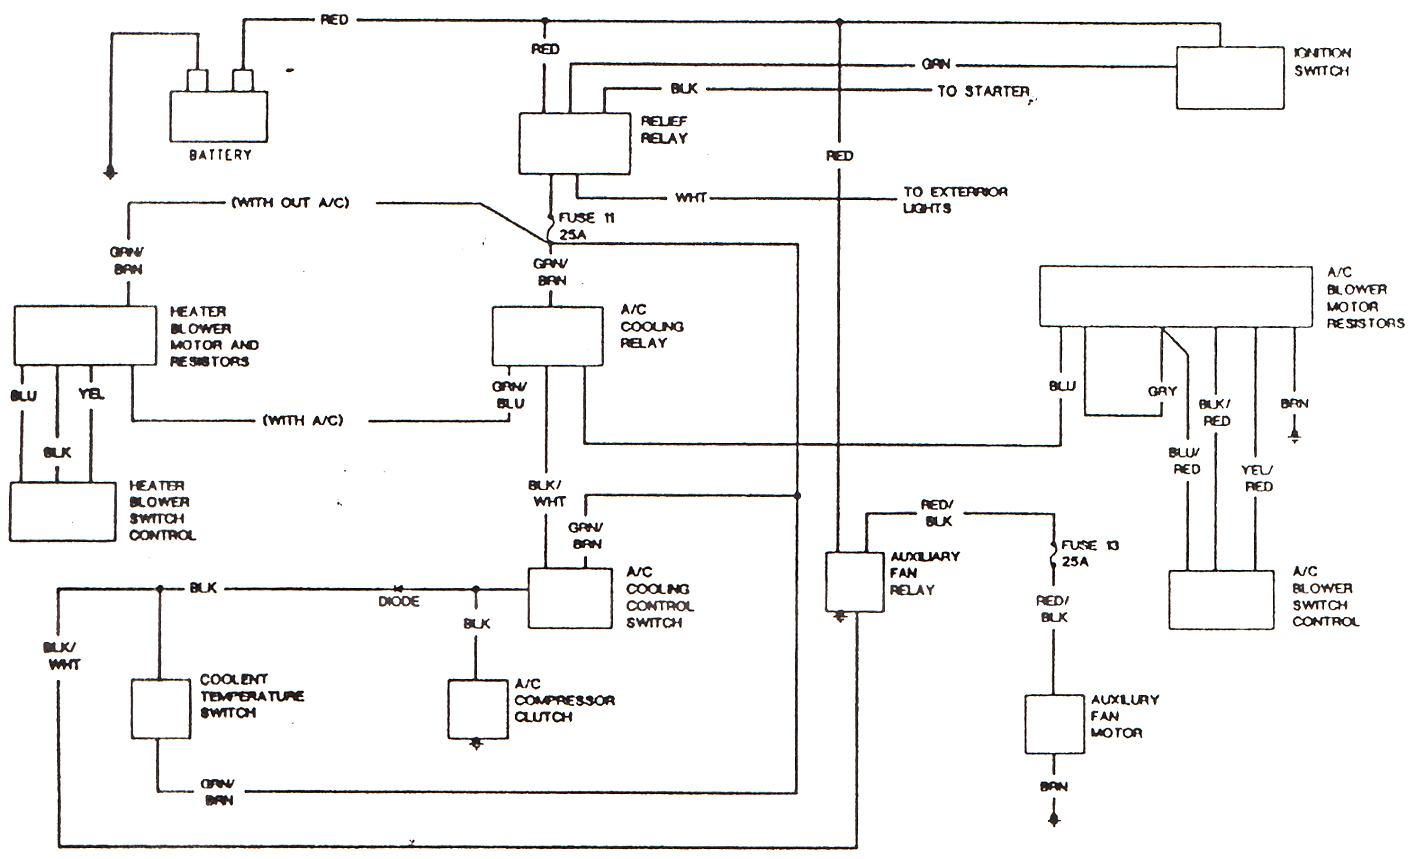 Ac motor diagram ac motor kit picture ac motor diagram4 cheapraybanclubmaster Choice Image